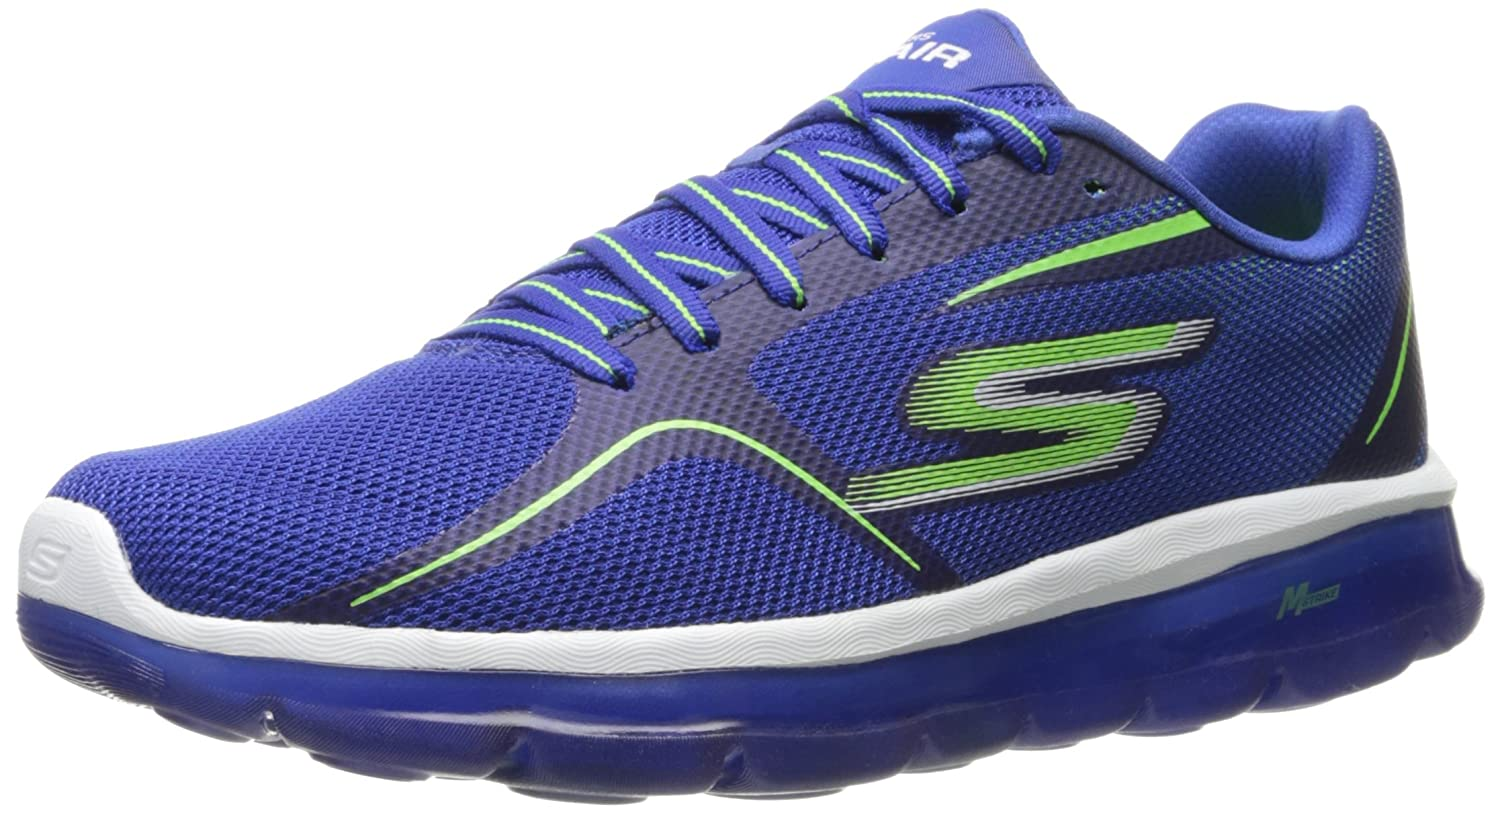 Skechers Performance Men's Go Air 2 Walking Shoe 8 D(M) US|Blue/Lime